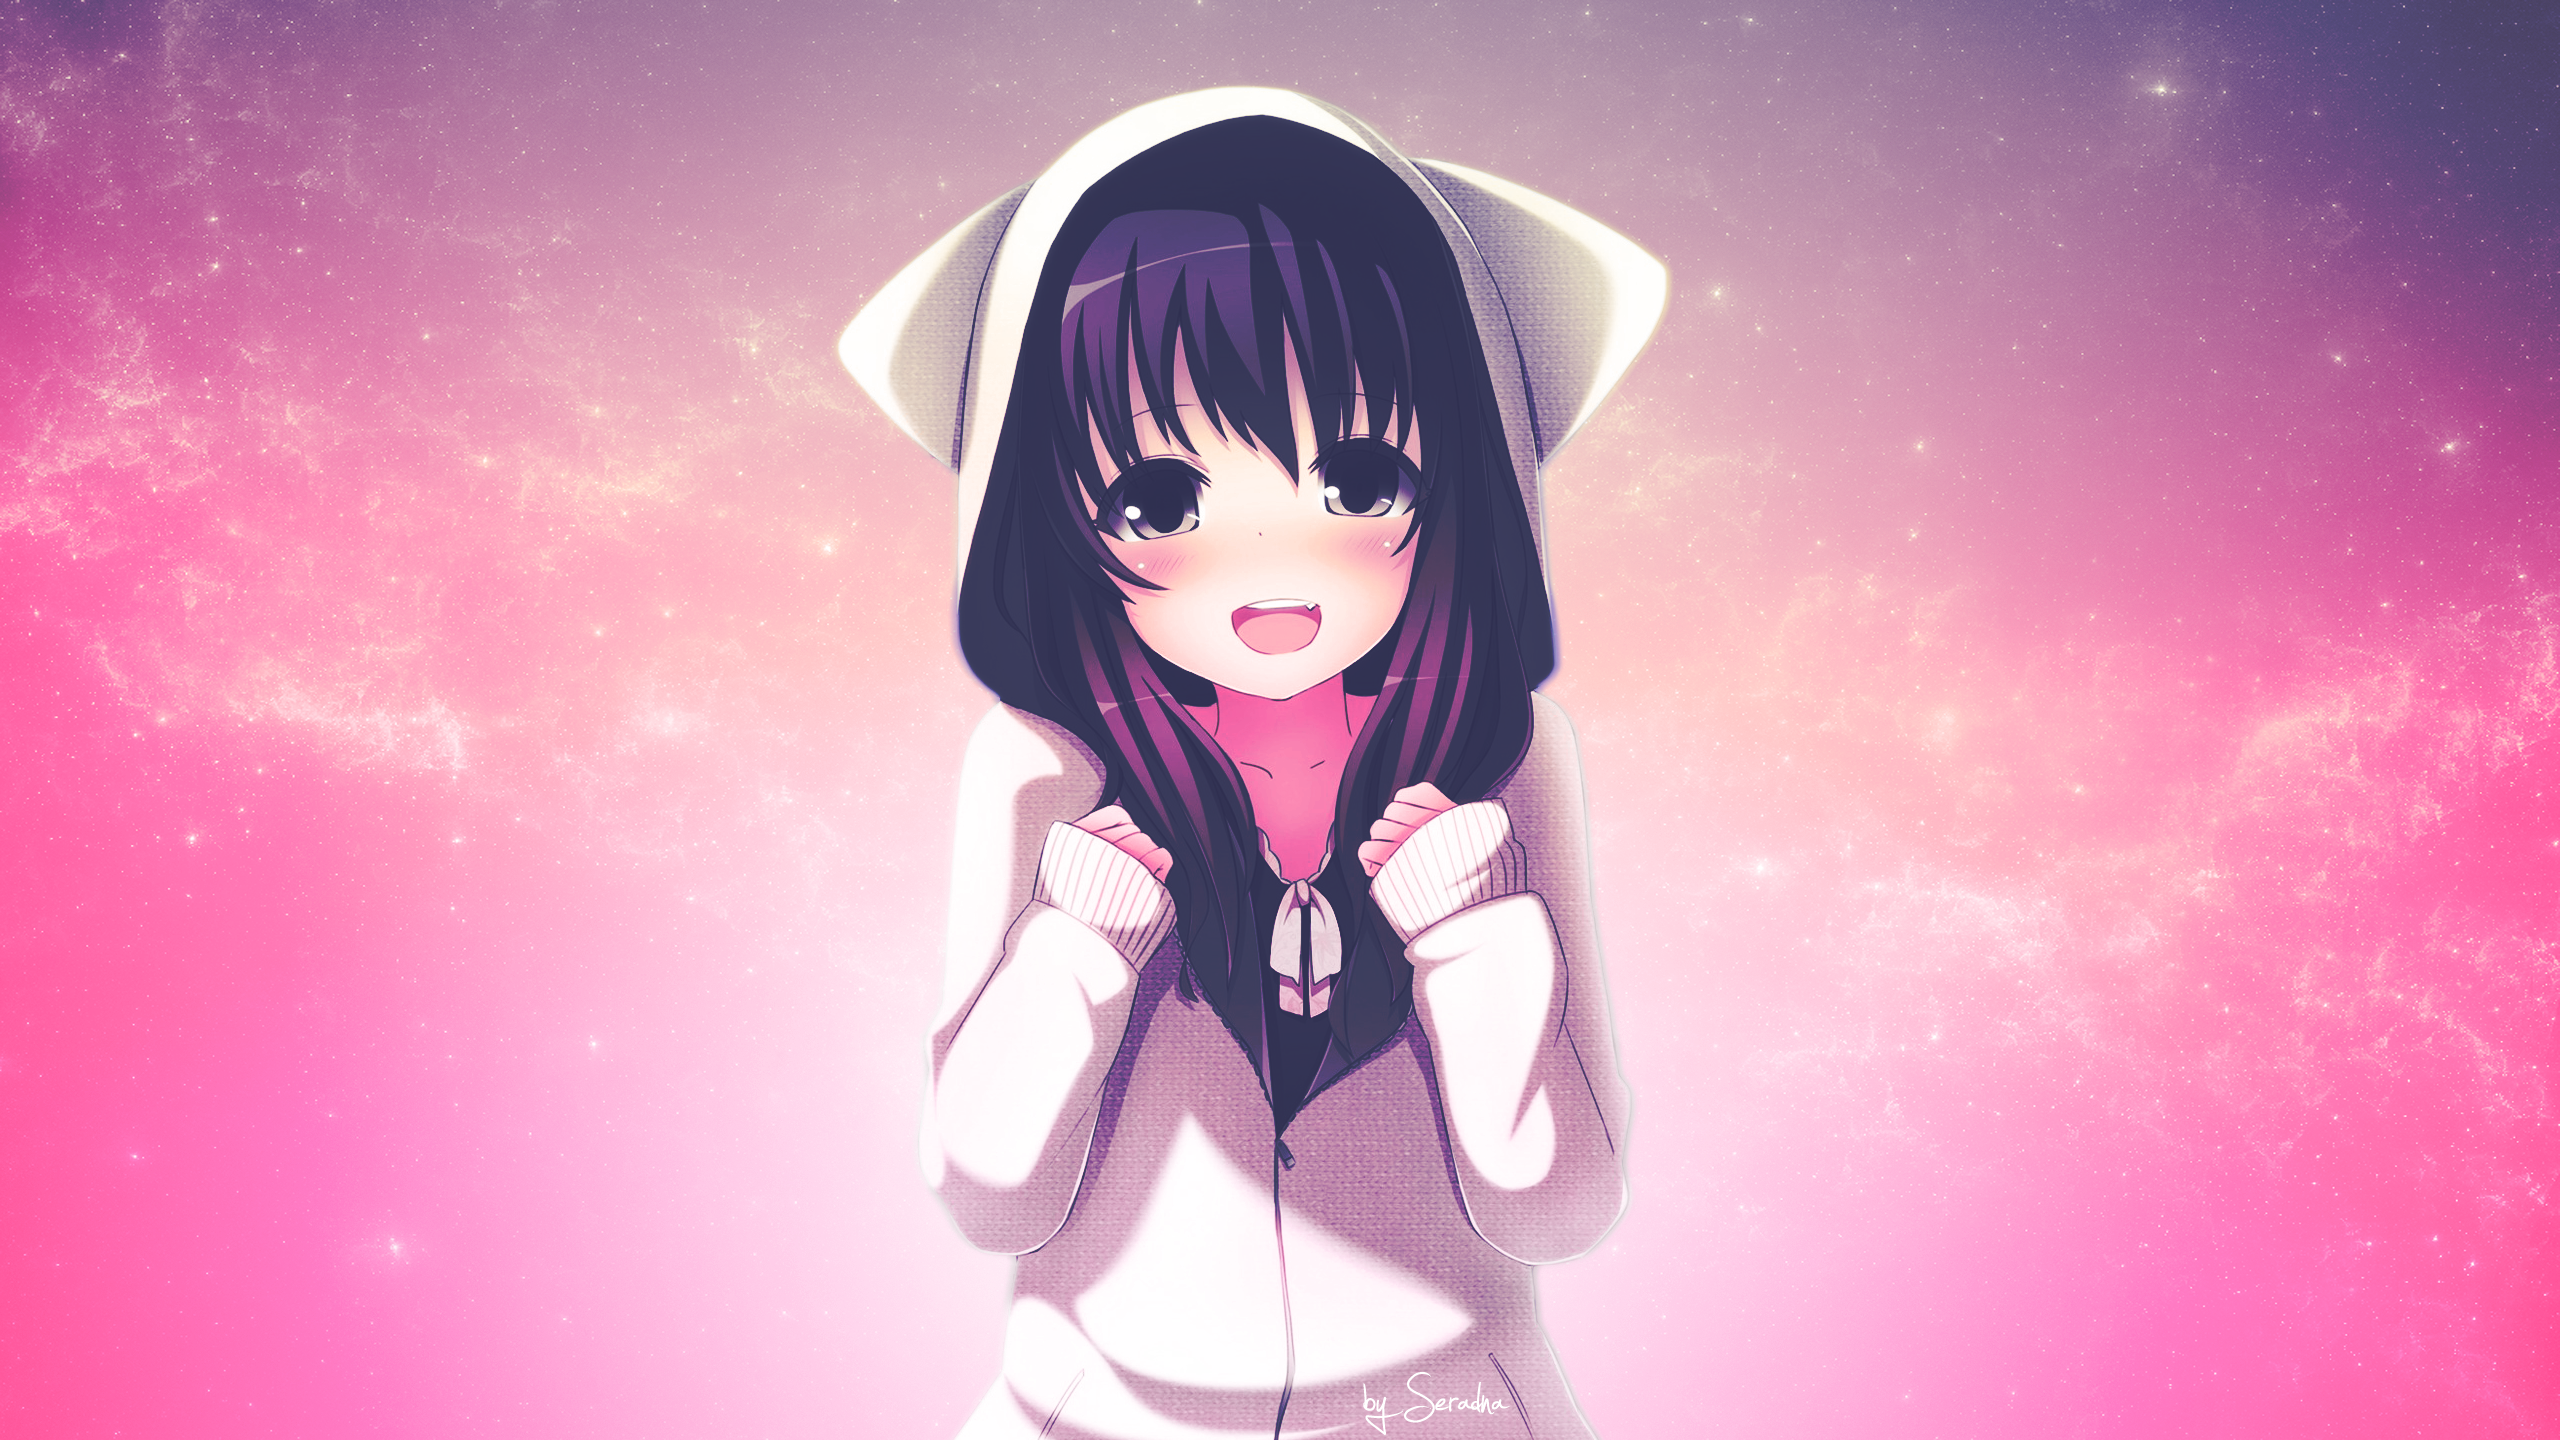 Hd Wallpapers Anime Music Guy Nightcore Wallpaper X